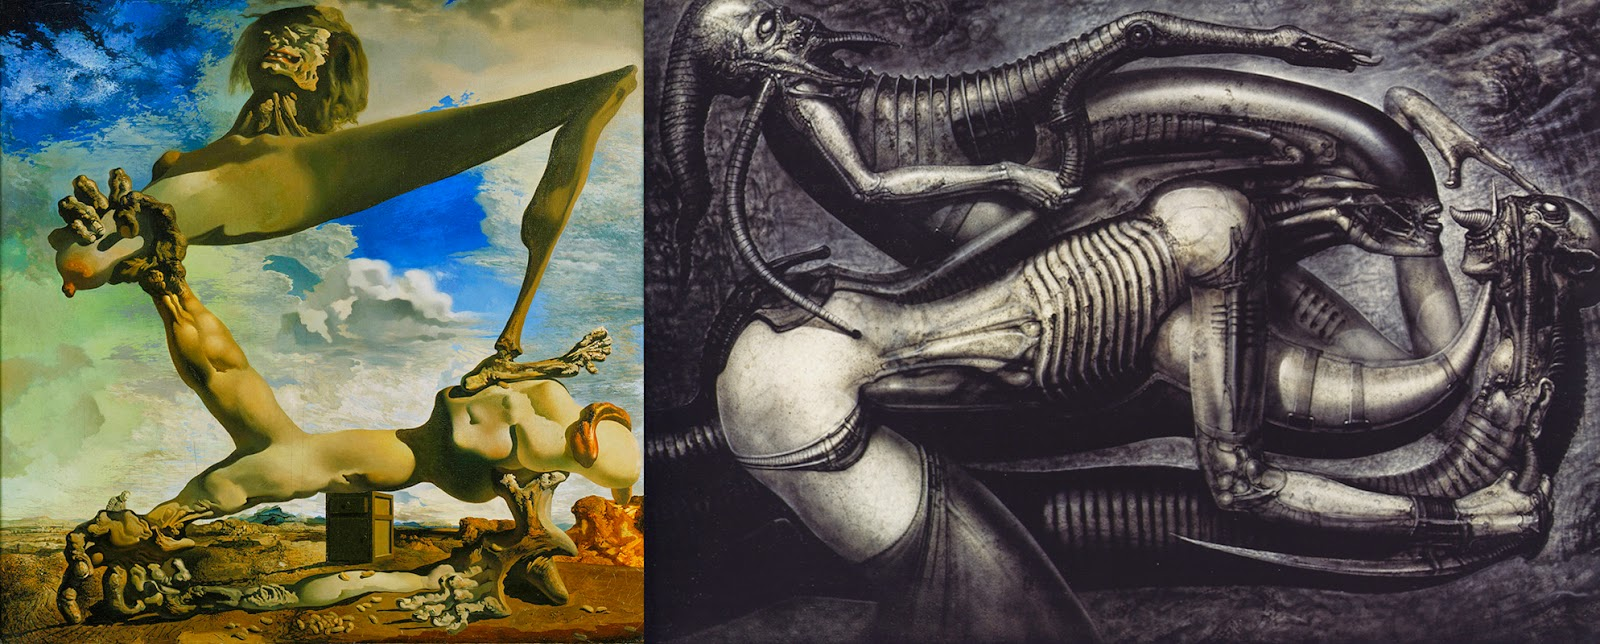 http://alienexplorations.blogspot.co.uk/2015/04/inspiration-from-dali-for-necronom-v_26.html